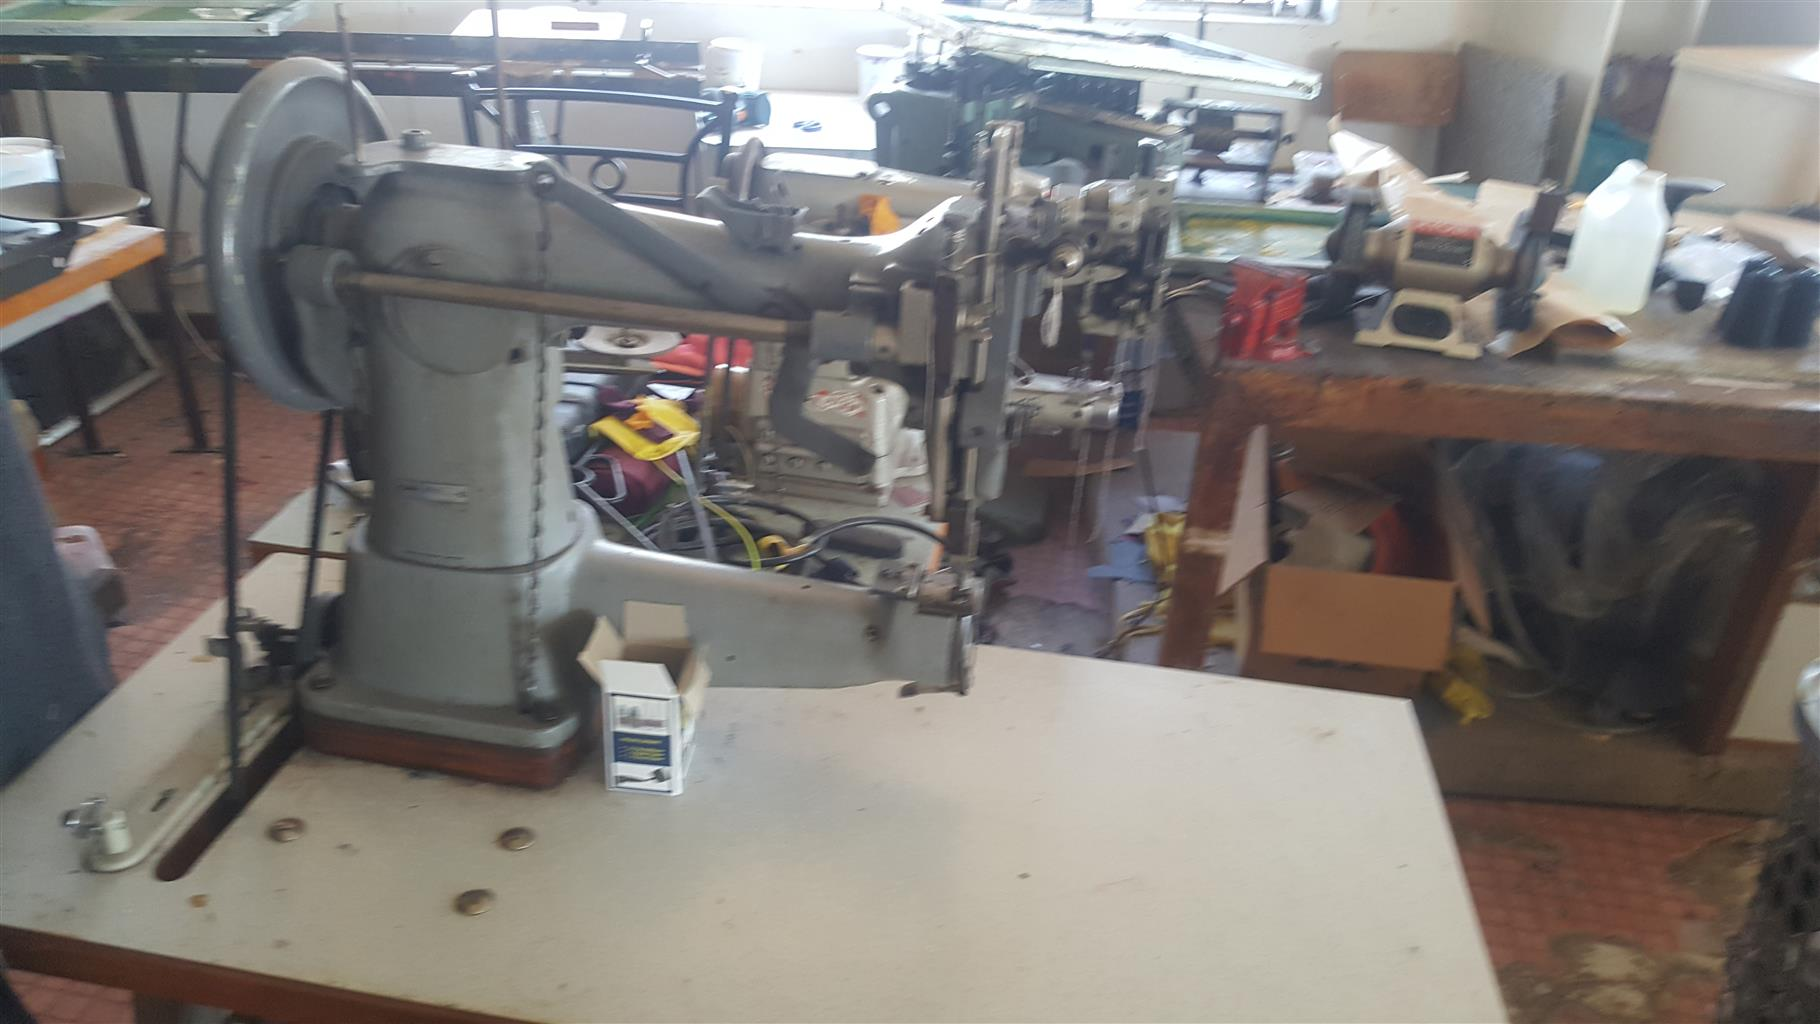 Complete Machinery for making of shoes, bags and tents.